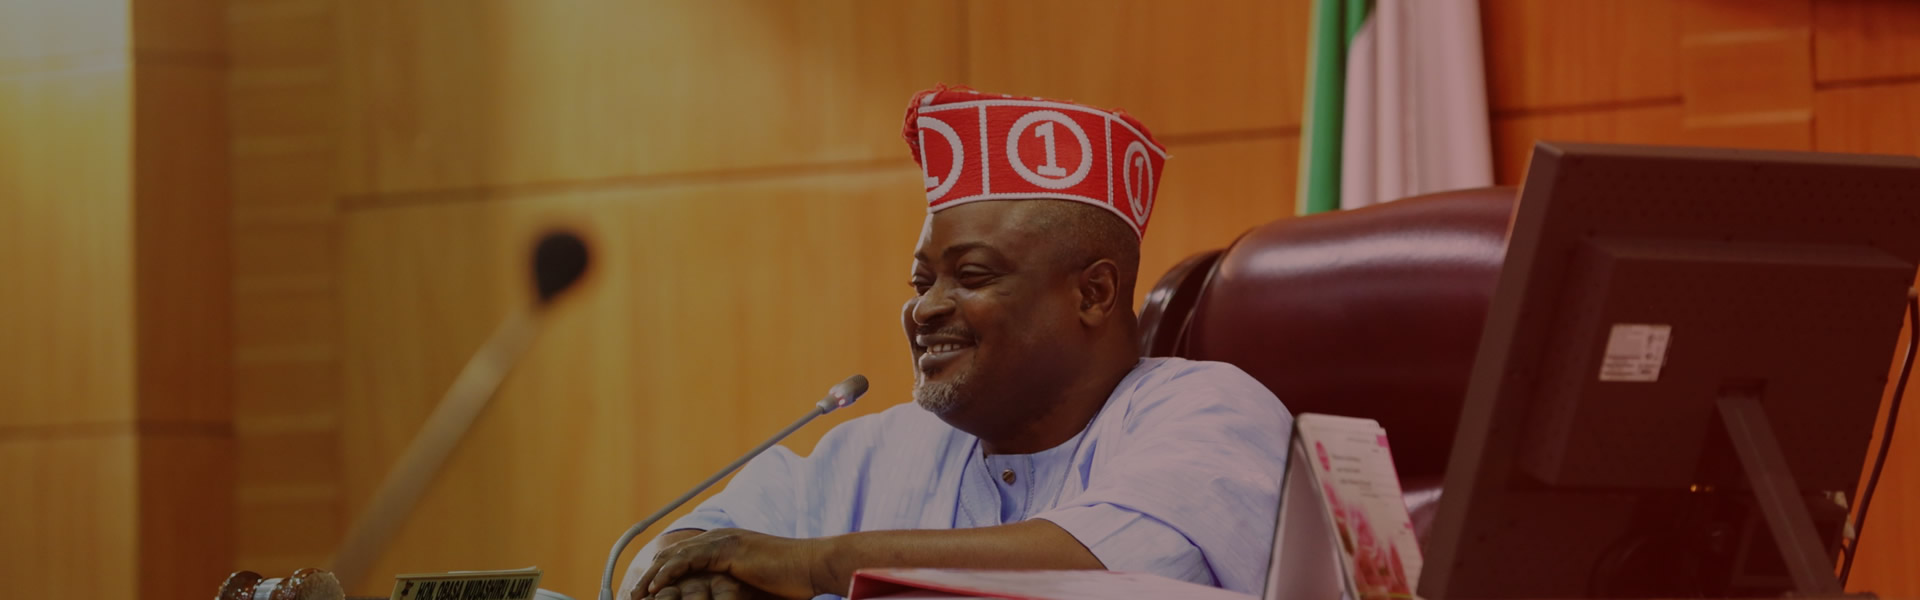 Mudashiru Obasa: Celebrating A Legislator Per Excellence, A Bridge Builder